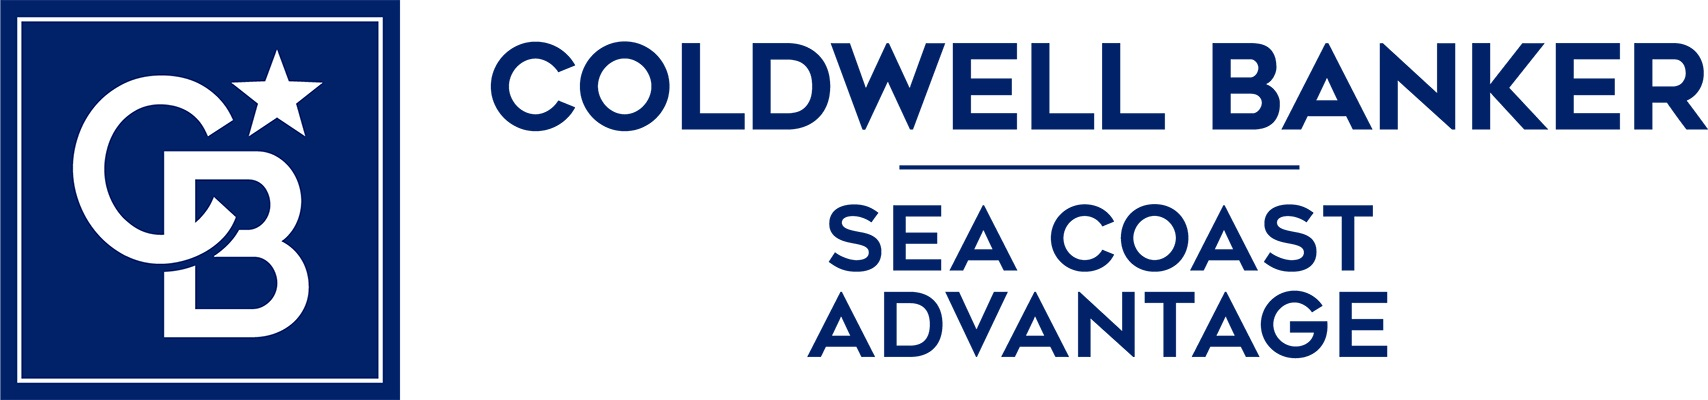 Ryan McKelvey - Coldwell Banker Sea Coast Advantage Realty Logo